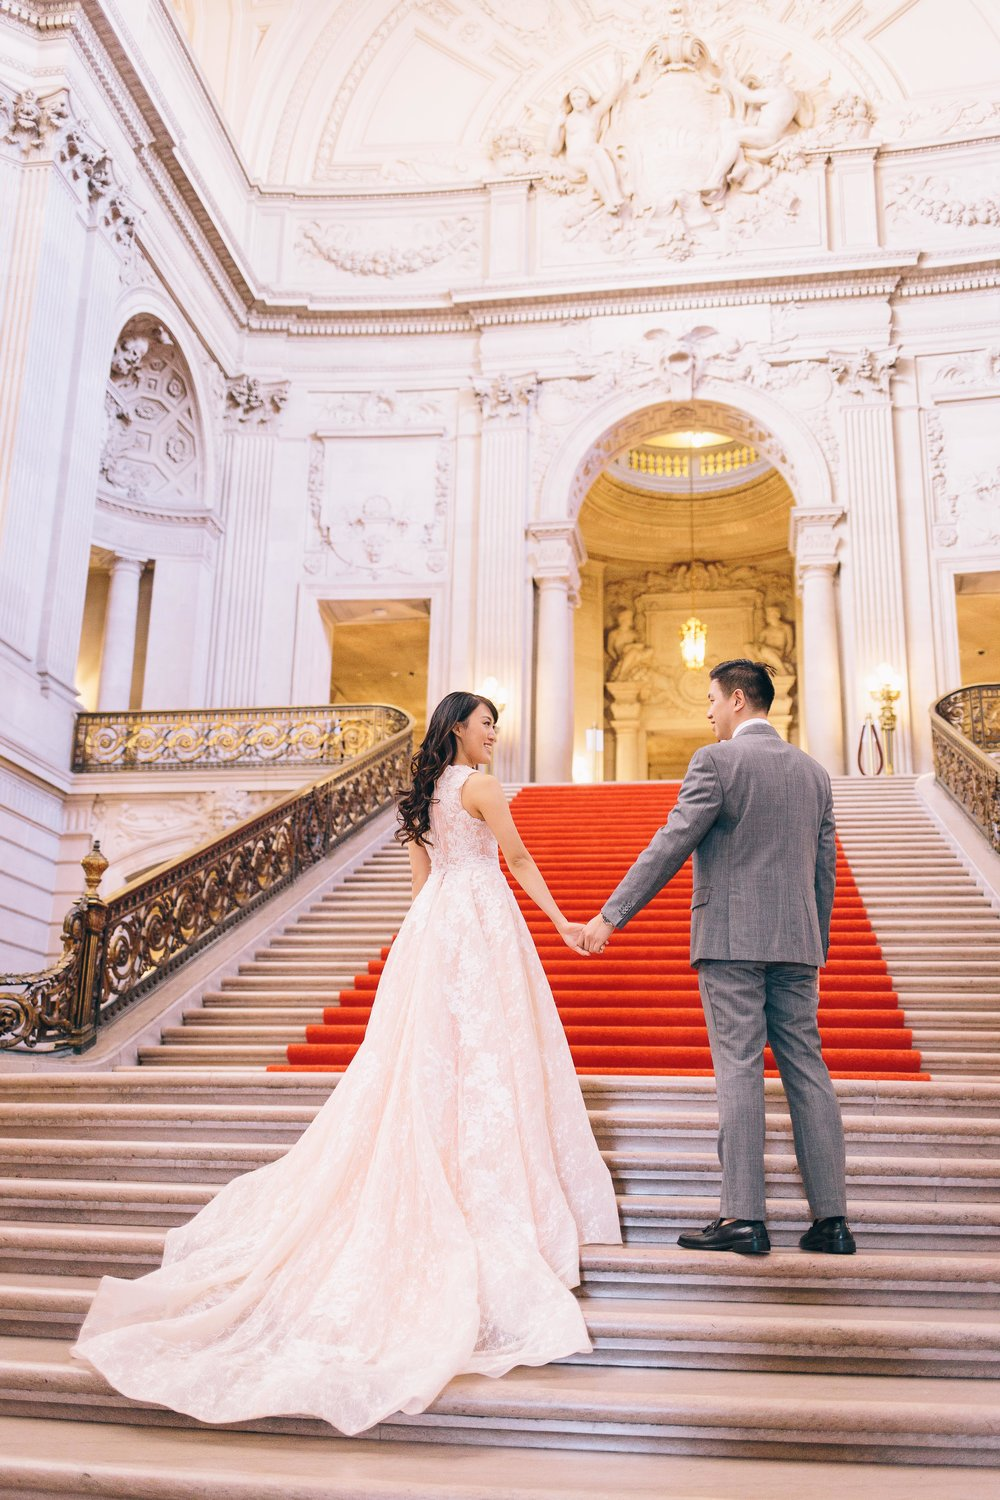 San Francisco City Hall Pre-Wedding Photos by JBJ Pictures - SF City Hall Wedding and Engagement Photos (3).jpg